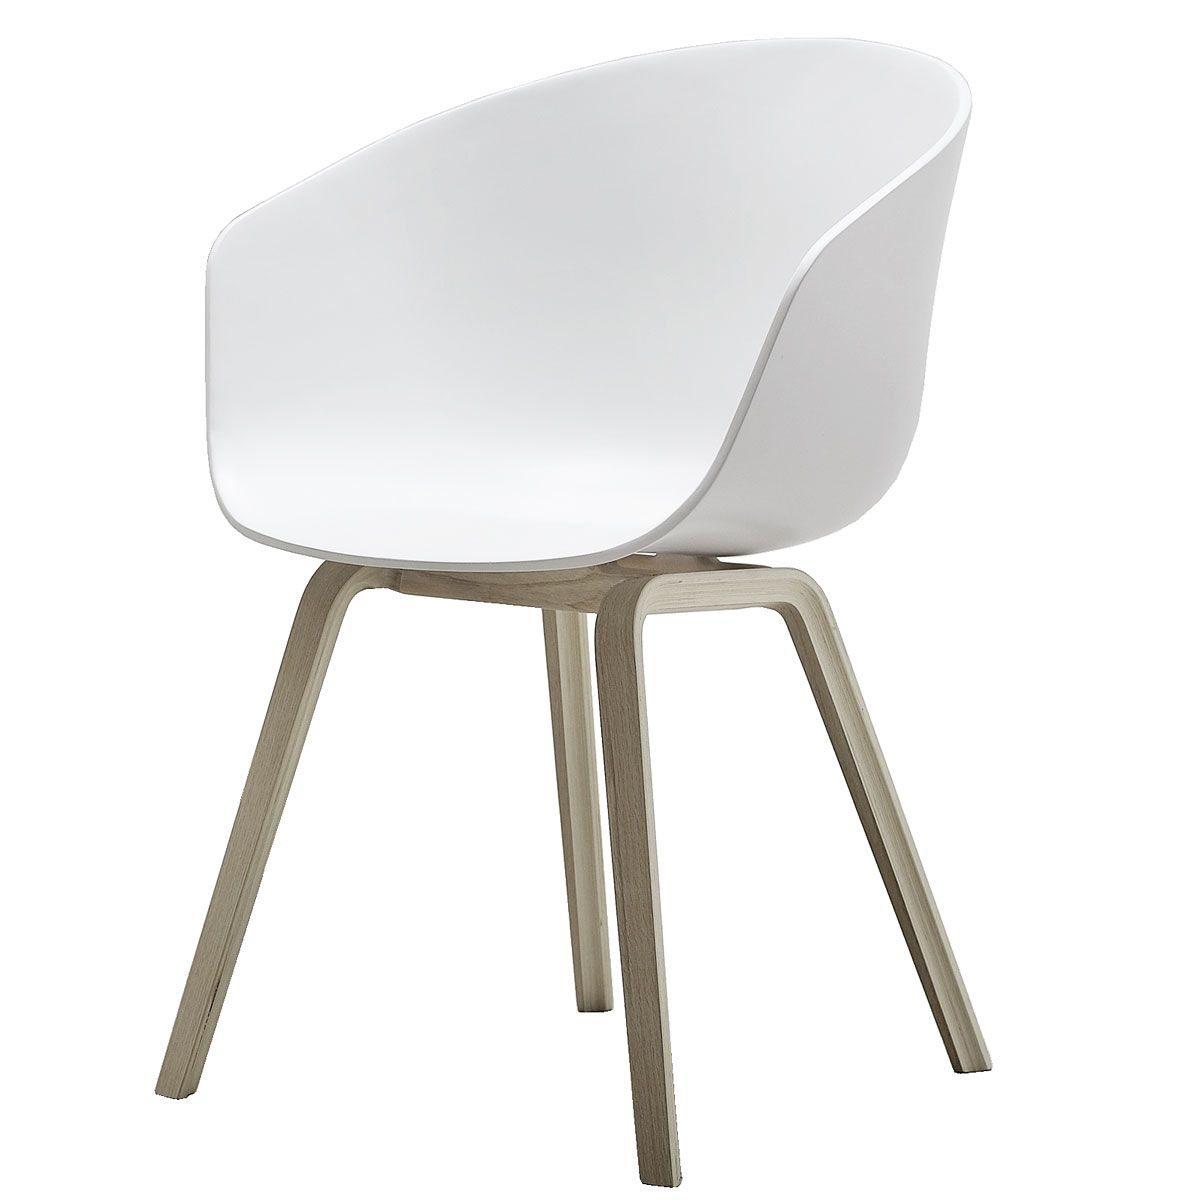 About A Chair Aac 22 Hay Shop Hay Chair Hay Design Chair